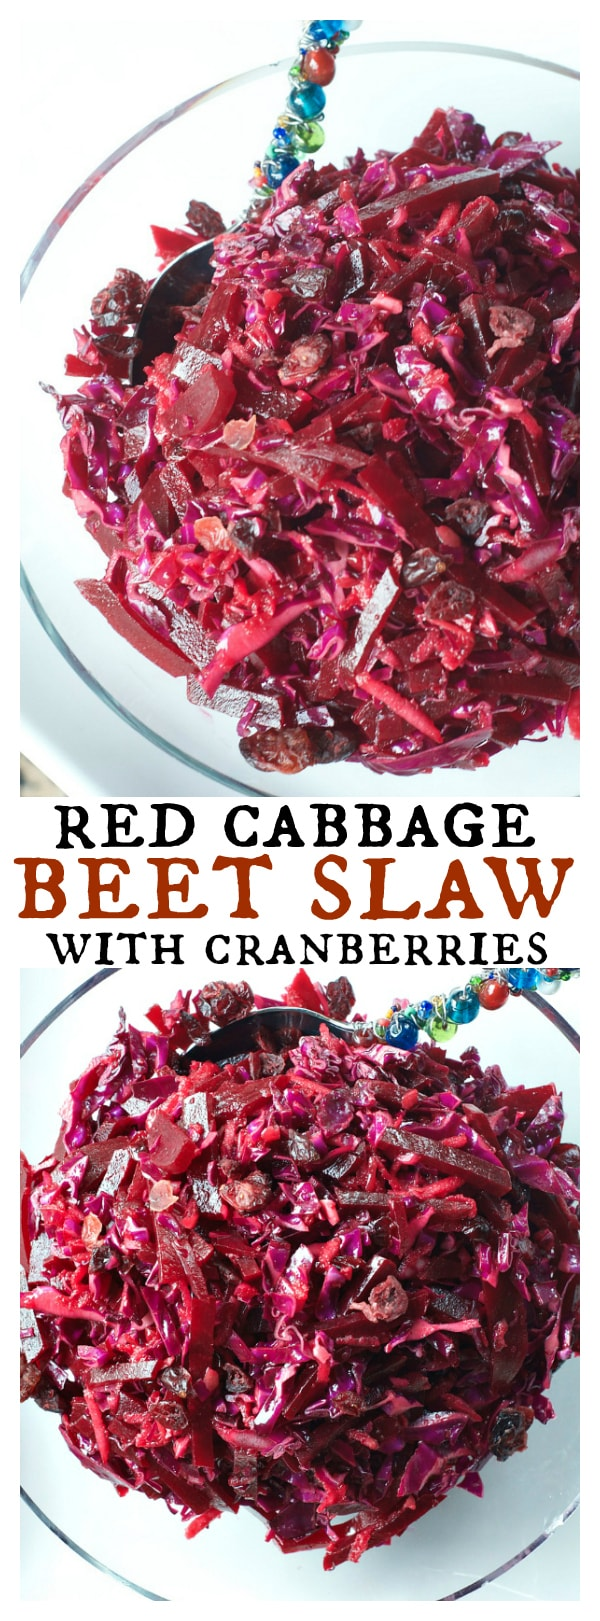 Red Cabbage Beet Slaw with Cranberries